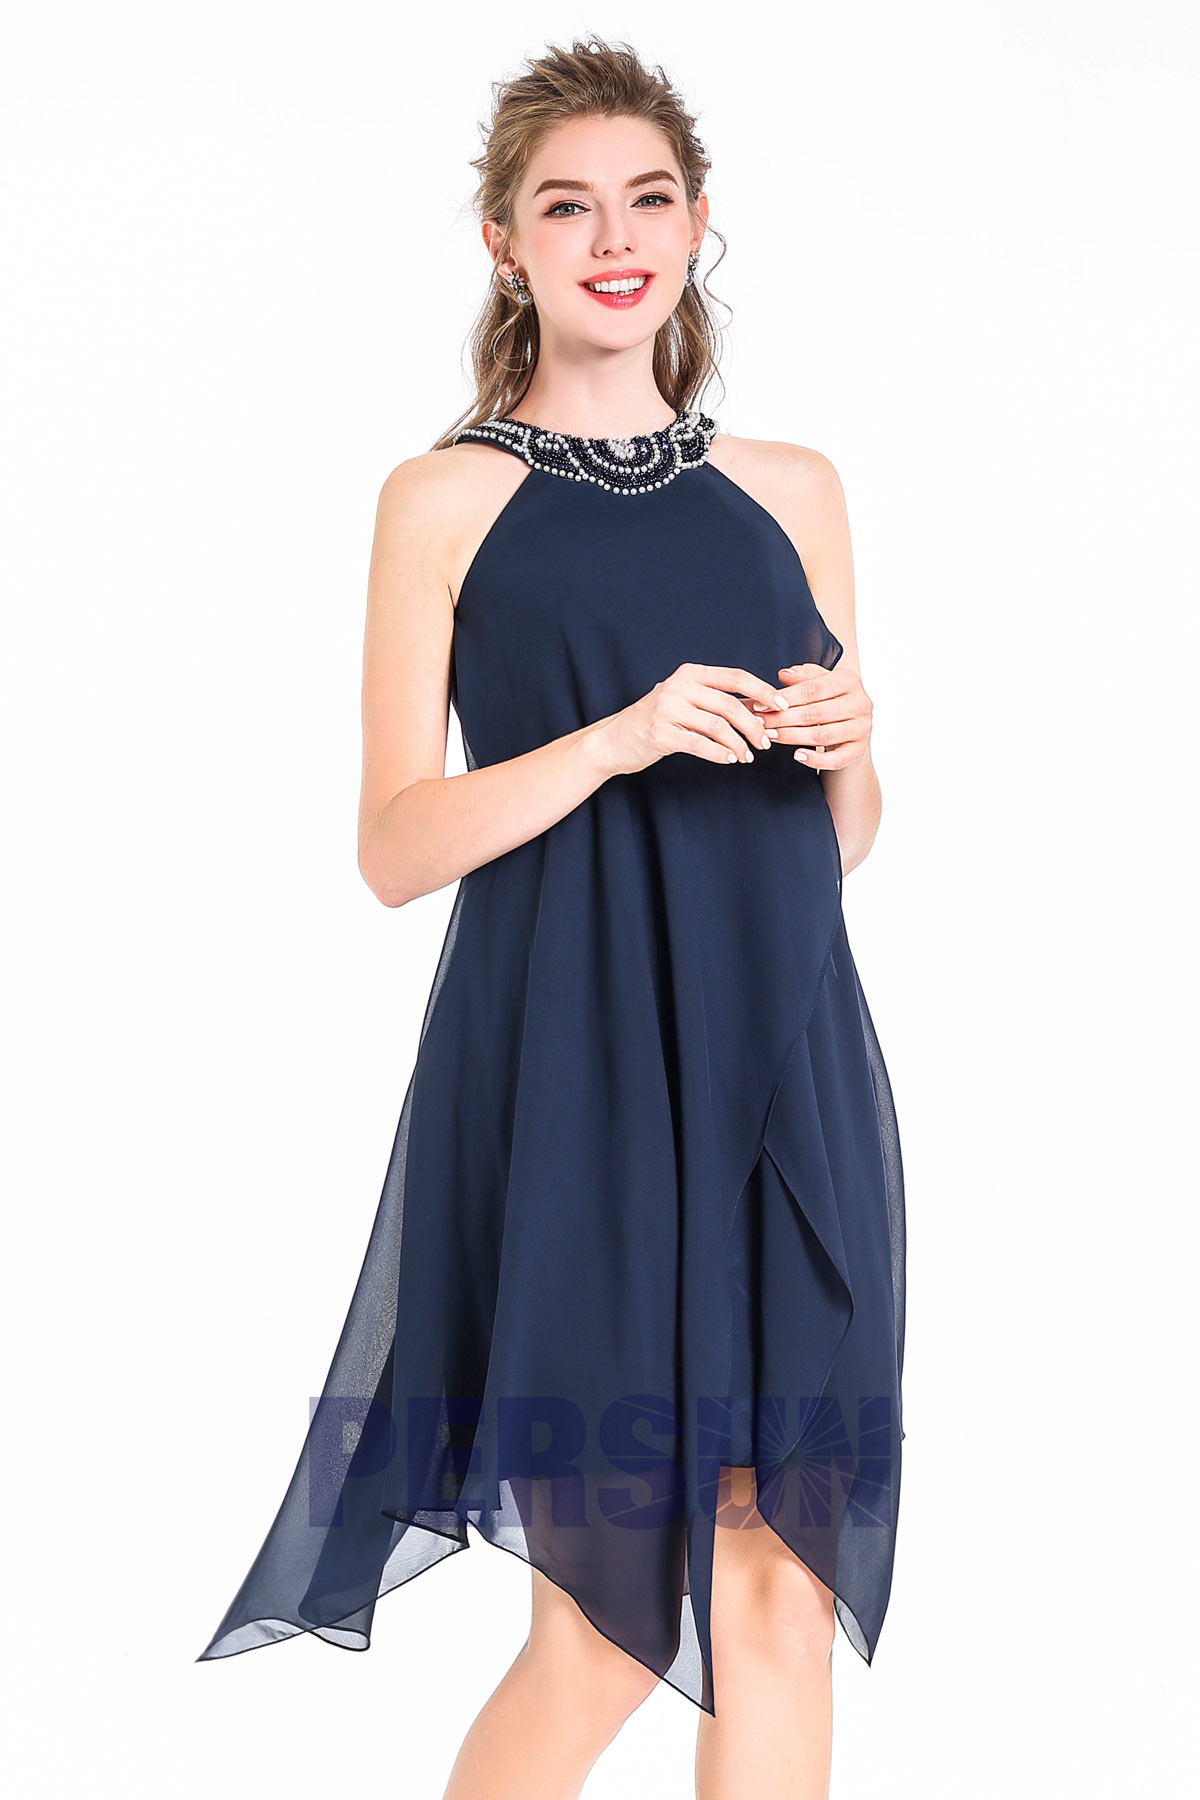 Robe de cocktail courte bleue marine